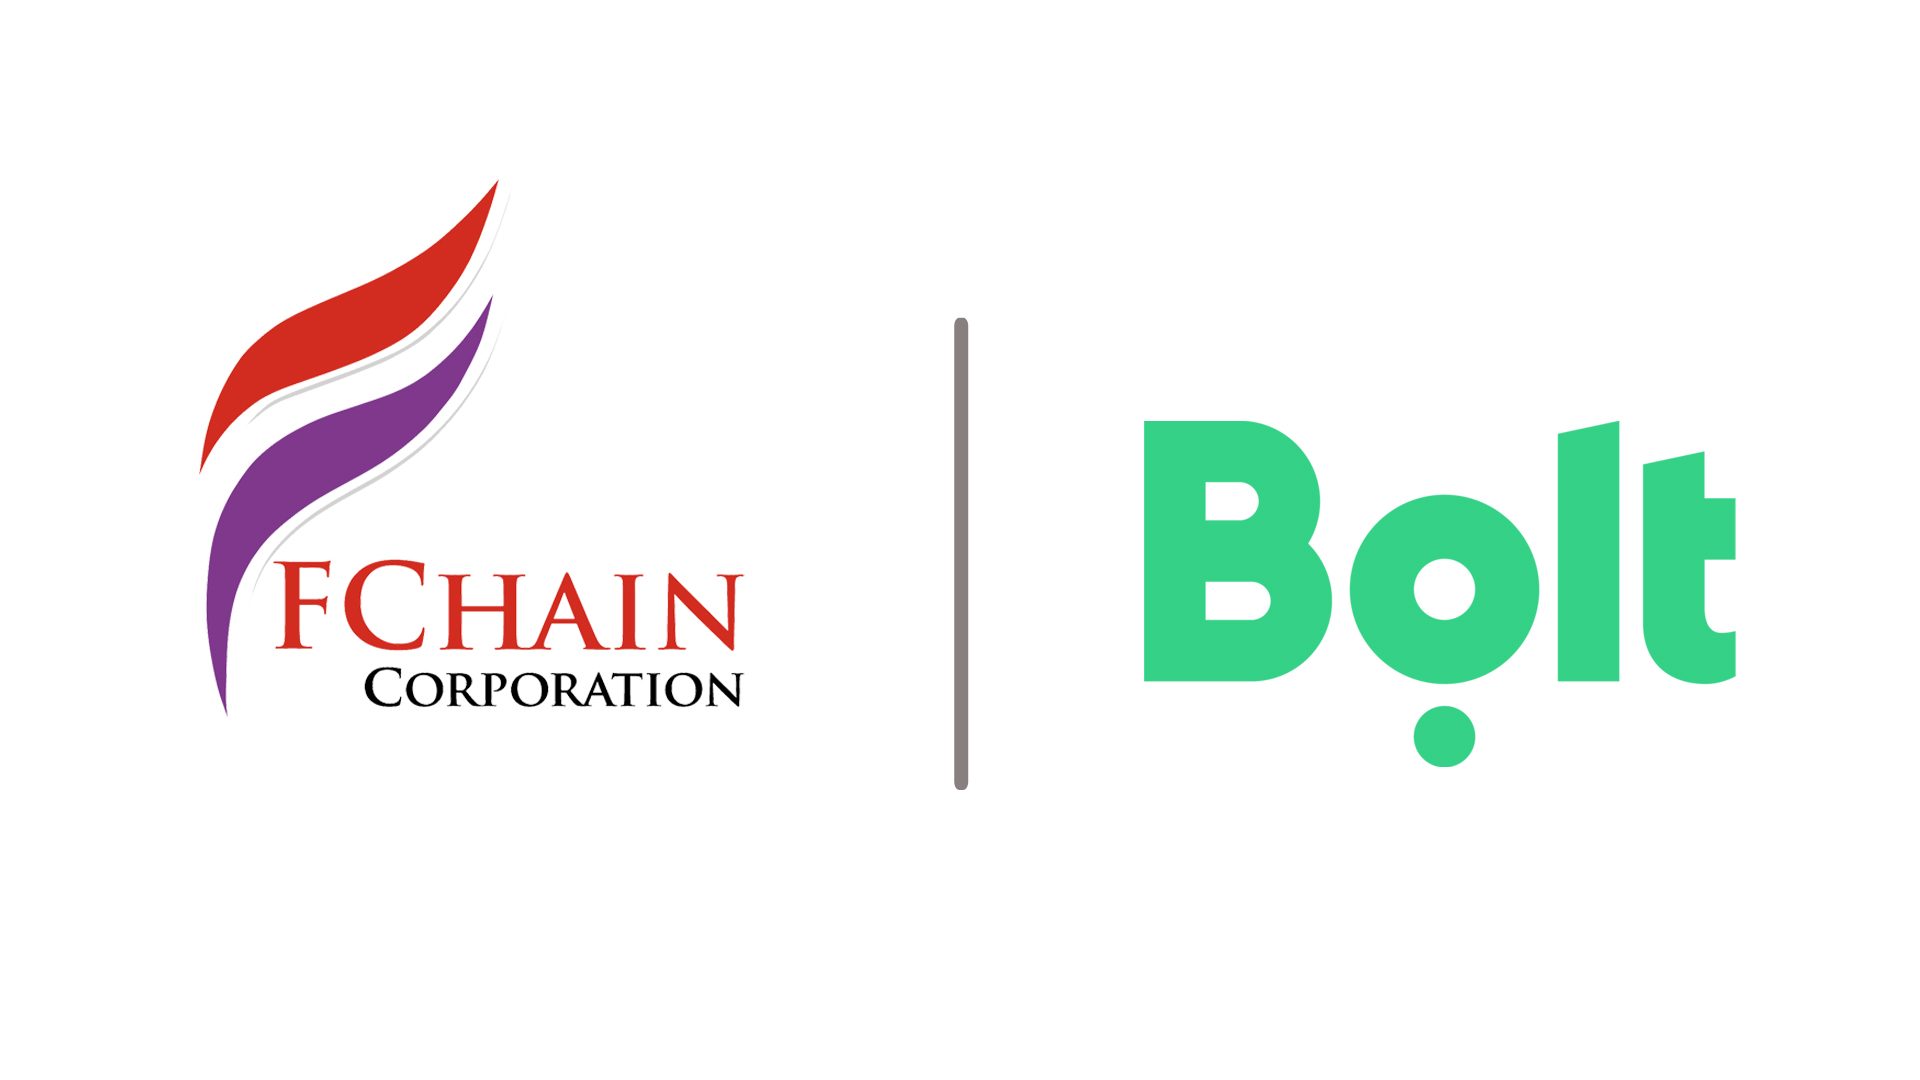 FCHAIN has started cooperation with Bolt